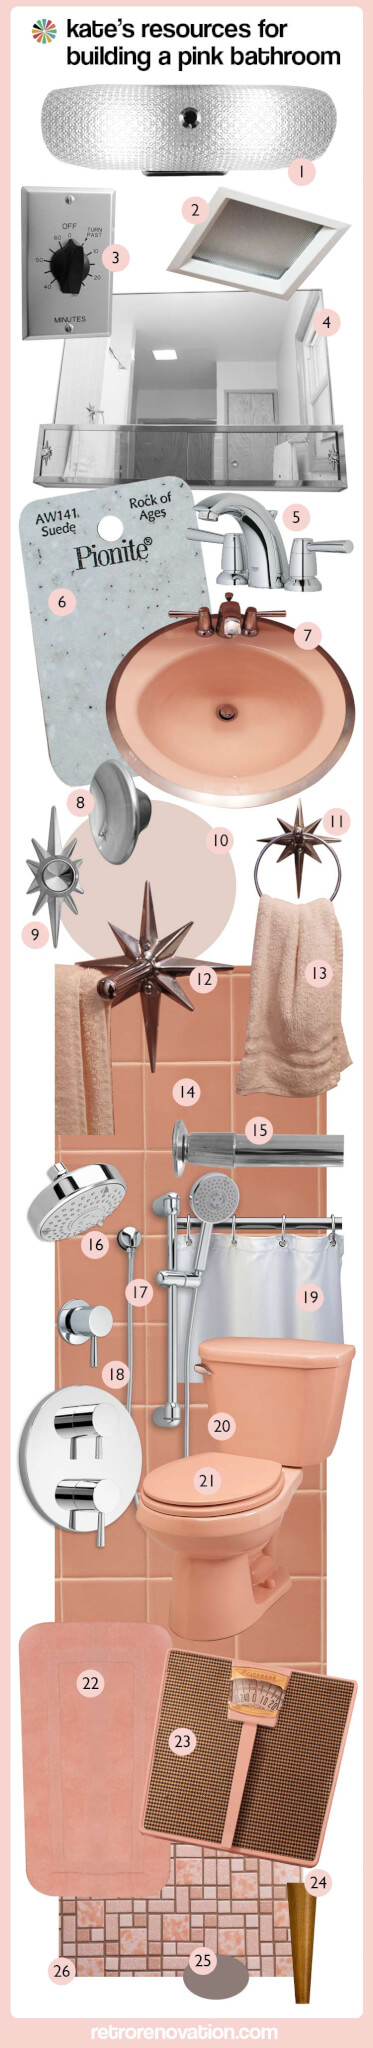 pink bathroom sources